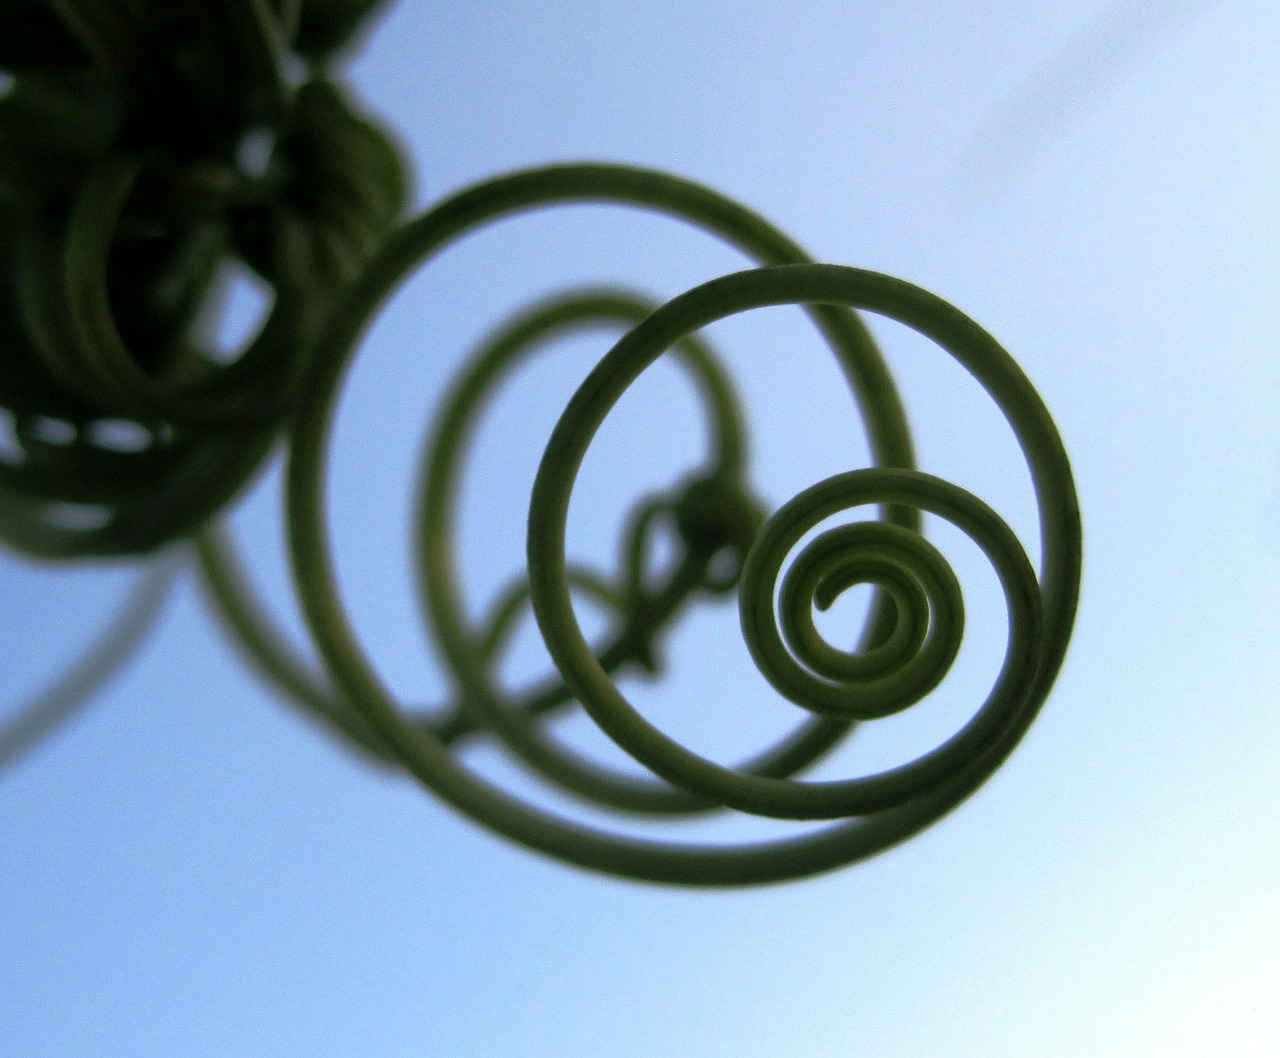 tendril climber spiral free photo